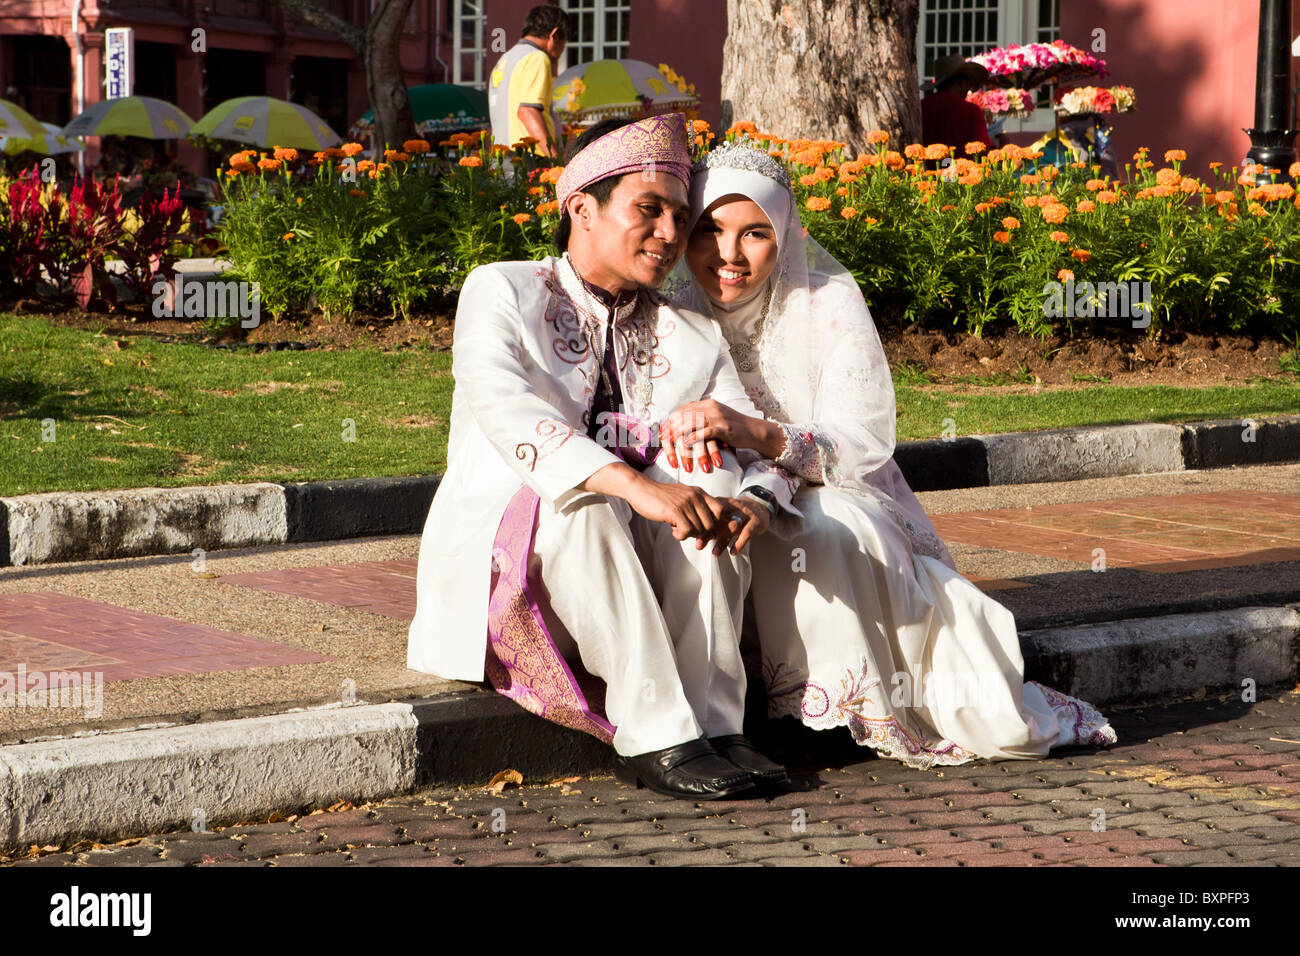 A Malay bride and groom on their wedding day. - Stock Image